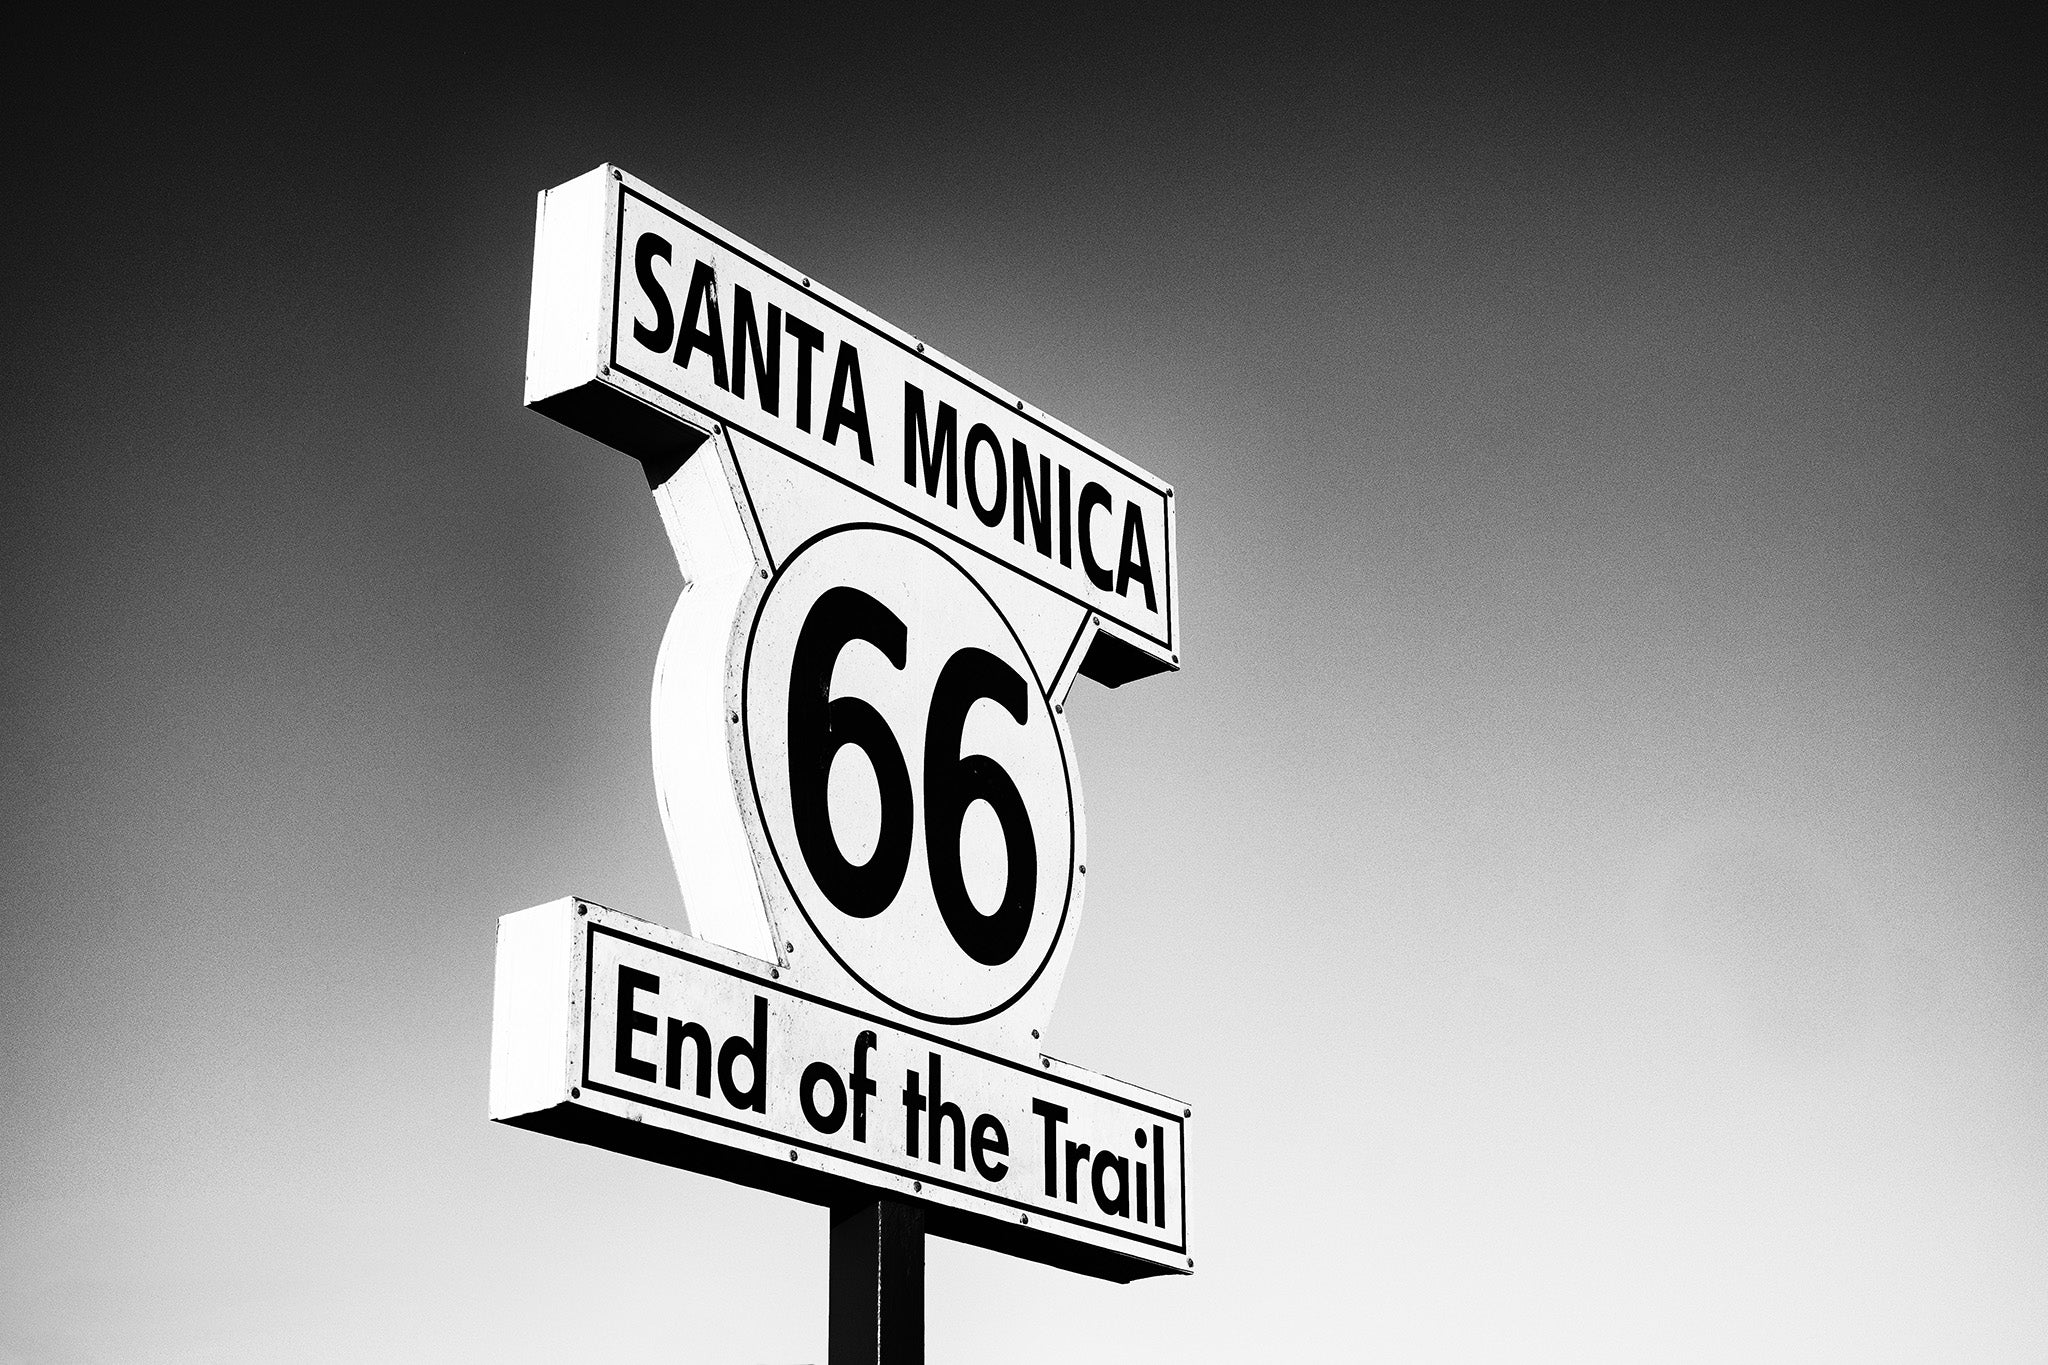 Santa Monica Route 66 Women's T Shirt